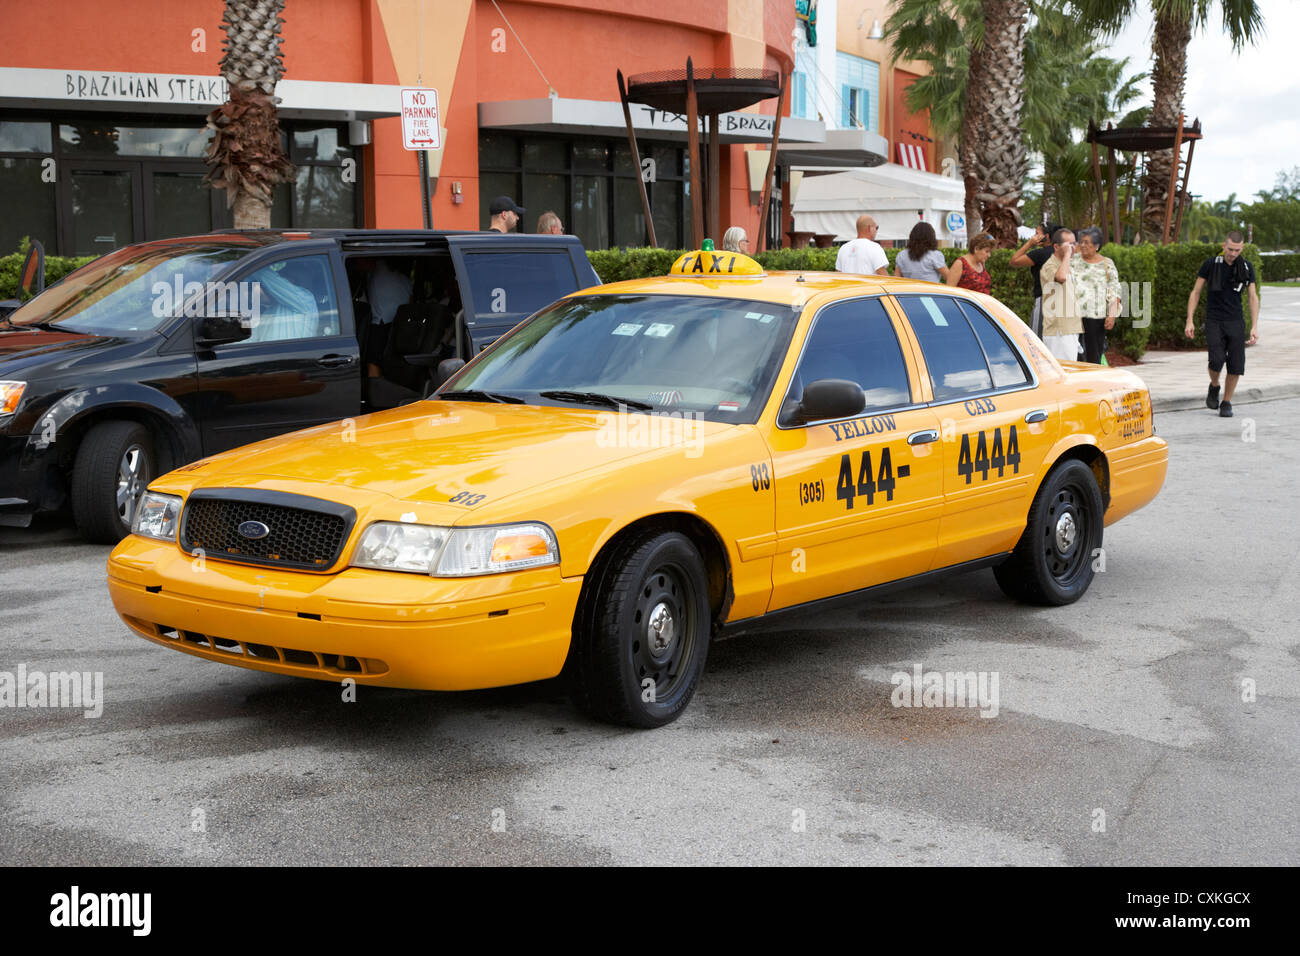 Yellow Cab, taxi à Miami en Floride usa Photo Stock